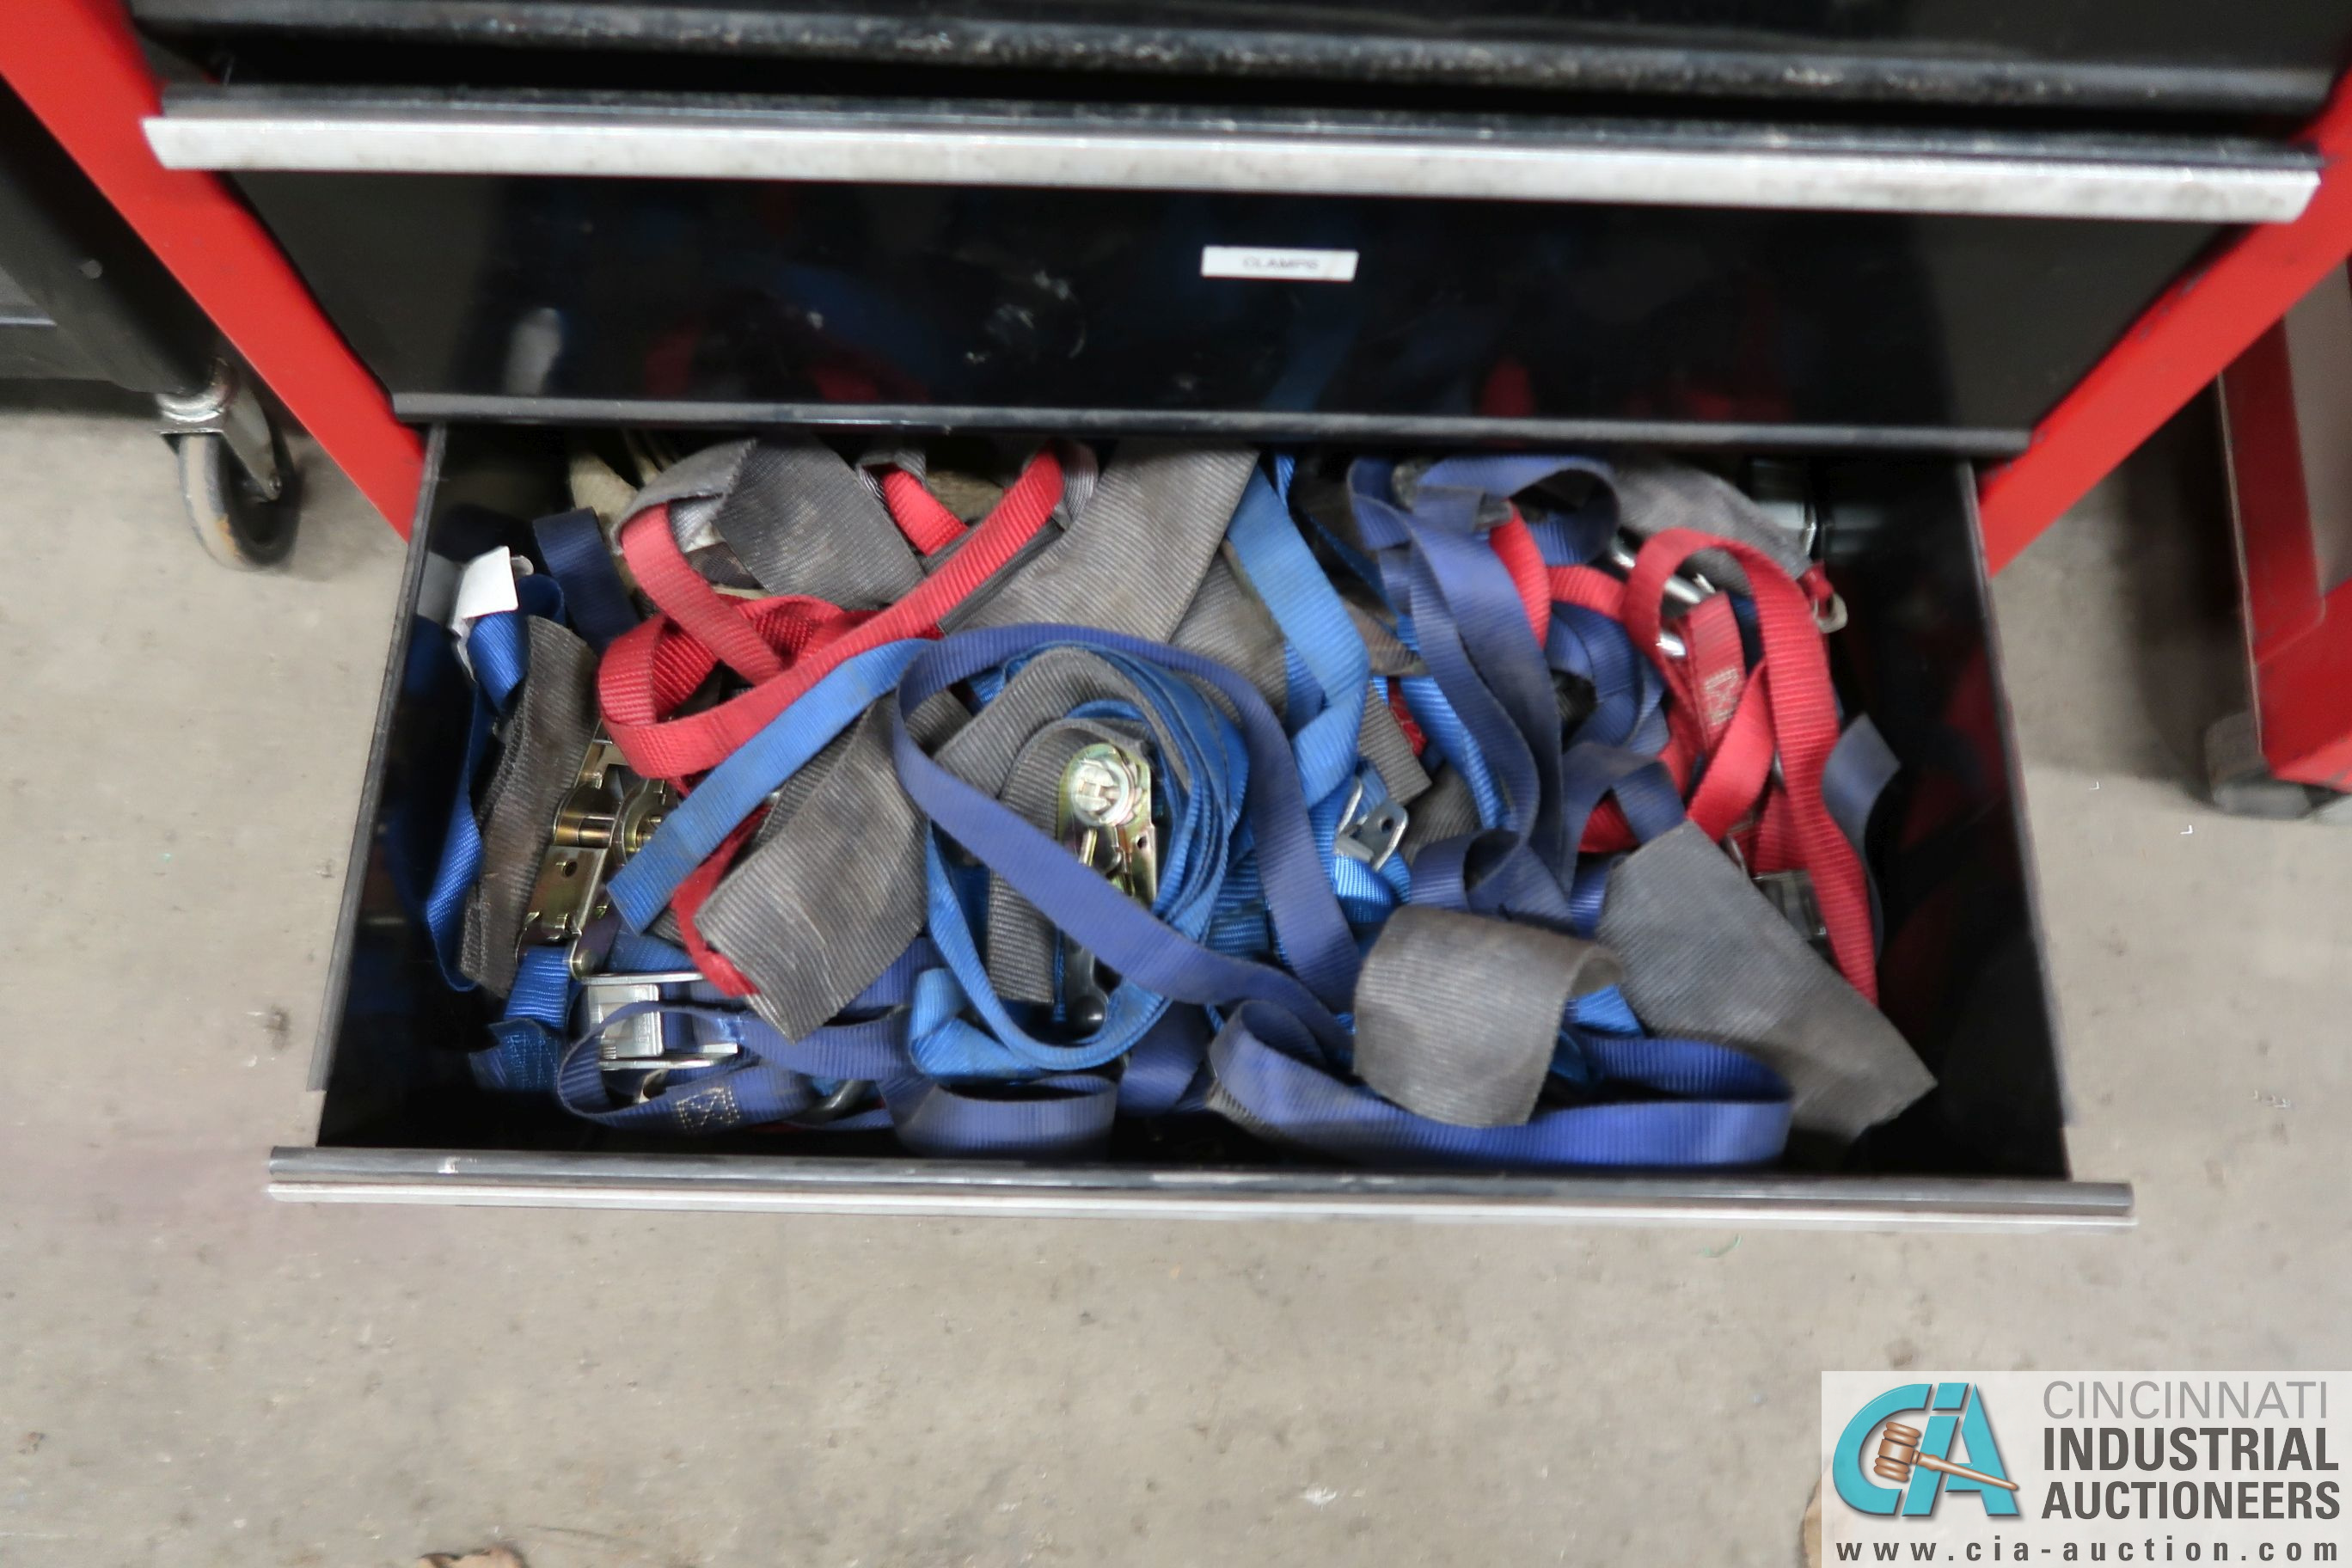 8-DRAWER CRAFTSMAN PORTABLE TOOL BOX WITH TOOLS - Image 7 of 7